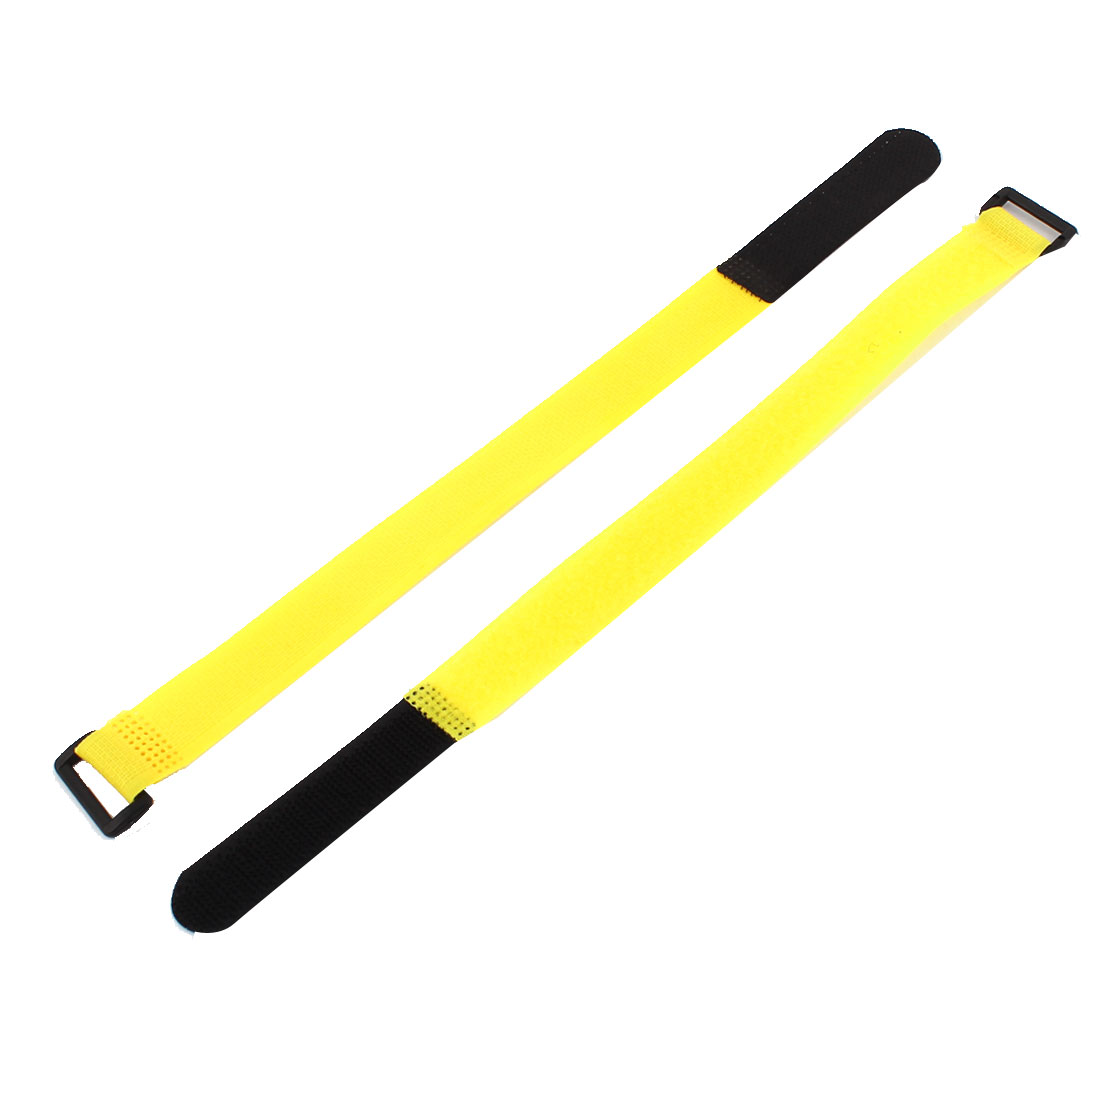 10Pcs 300mm x 20mm RC Lipo Battery Hoop Loop Reusable Cable Tie Down Strap Yellow